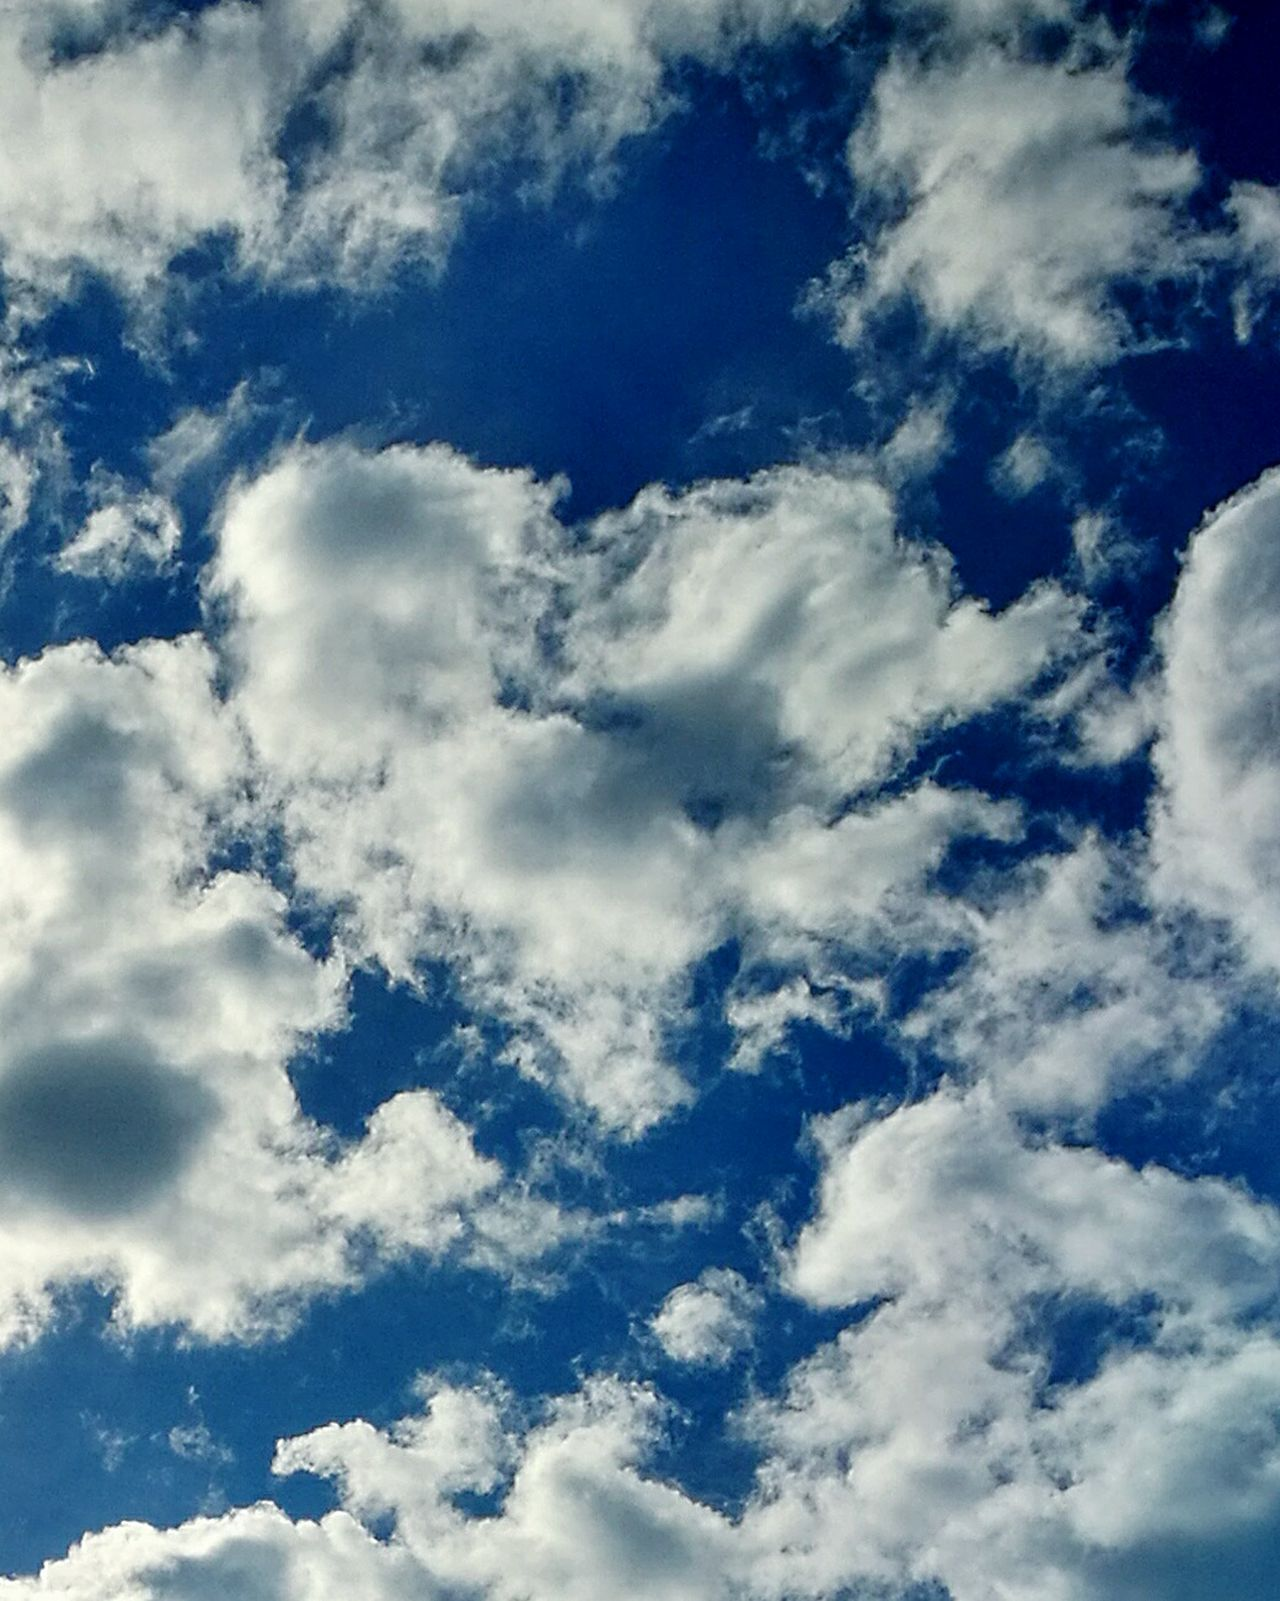 Cloud - Sky Sky Heart Of Clouds Cloudyheart Nature Beauty In Nature Low Angle View Cloudscape Dramatic Sky Heart In The Sky! Heart In Nature Scenics Heaven Clear Sky Storm Cloud